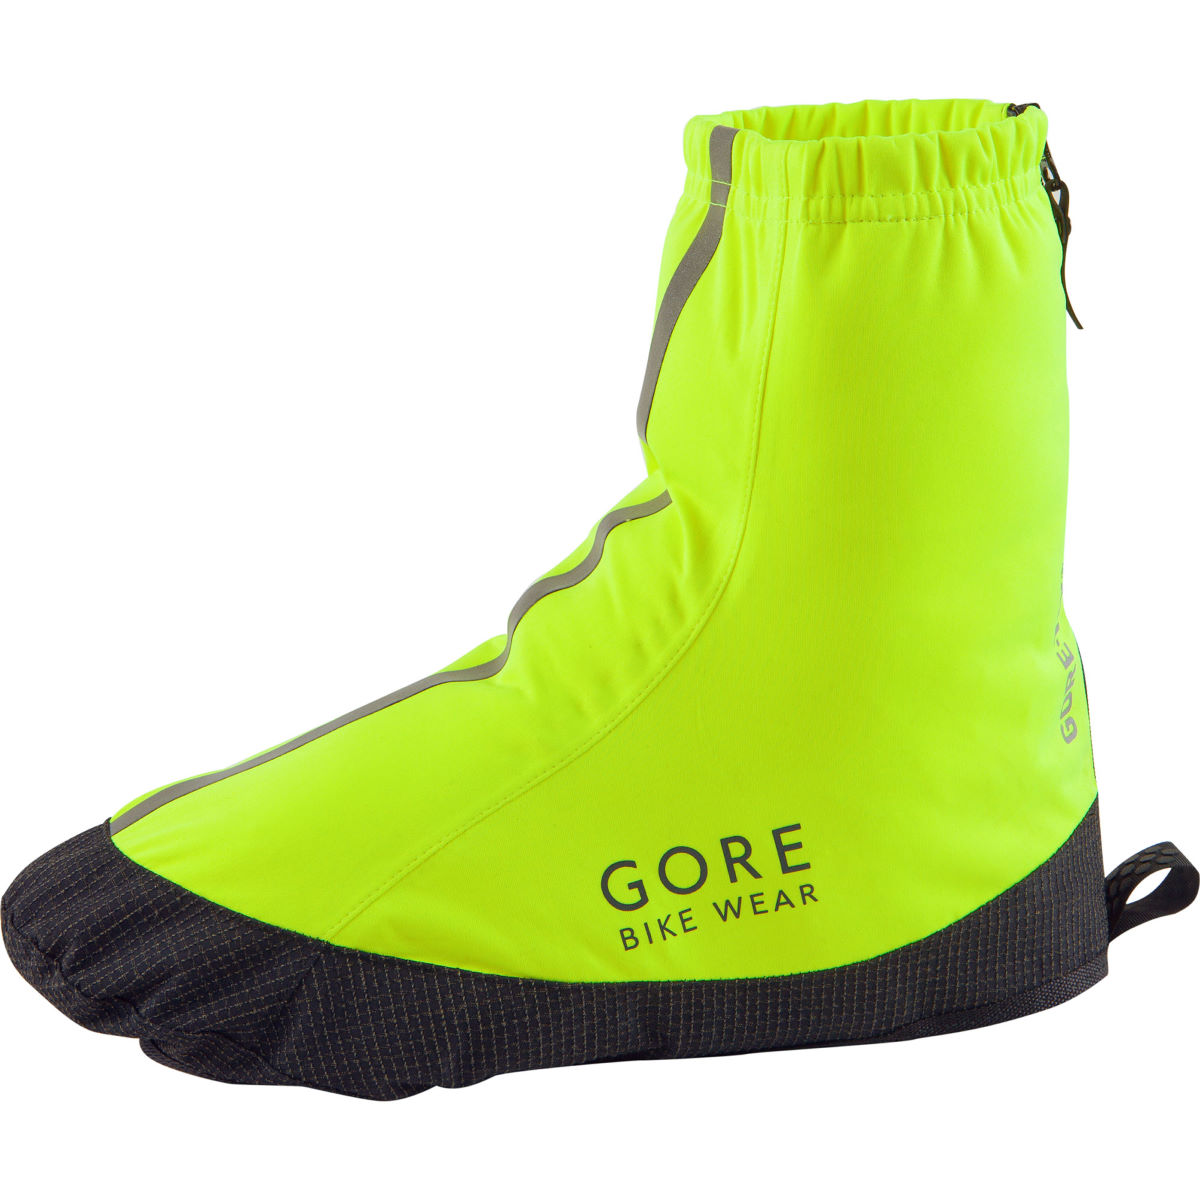 Couvre-chaussures Gore Bike Wear Road Gore-Tex Light - 36-38